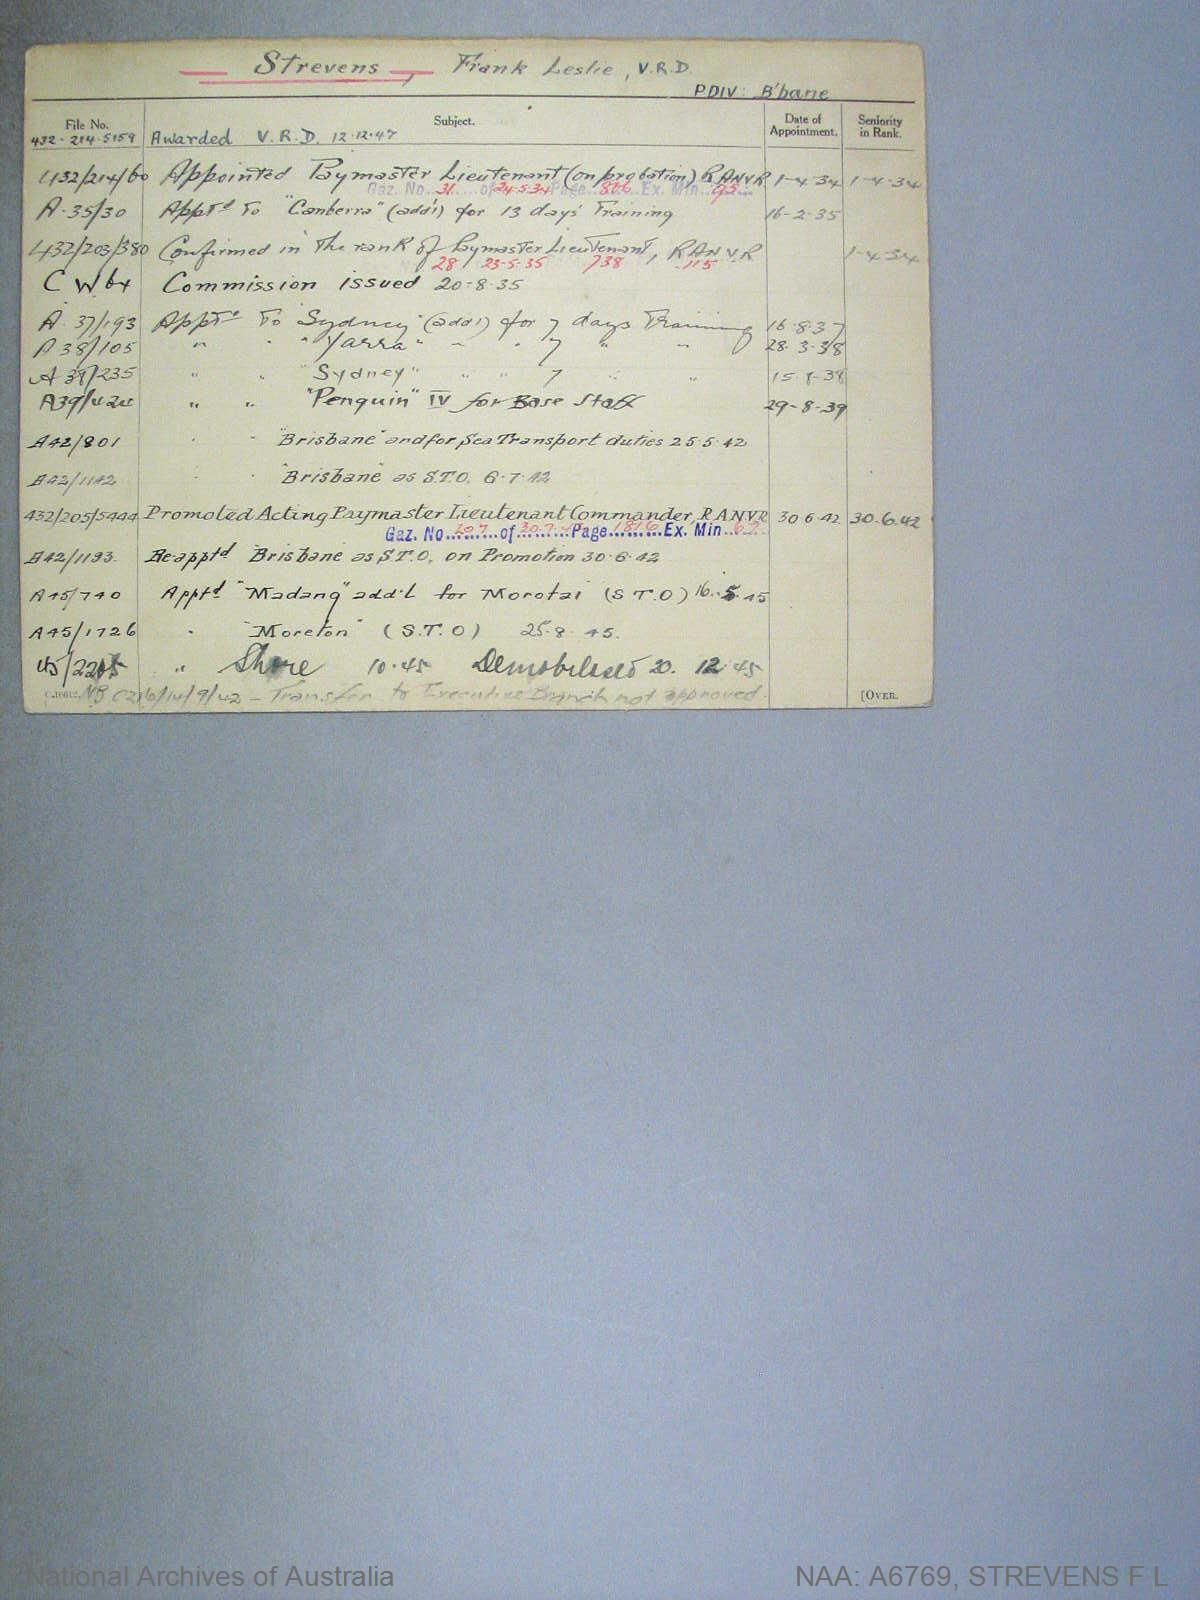 STREVENS FRANK LESLIE : Date of birth - 15 Nov 1900 : Place of birth - BRIGHTON ENGLAND : Place of enlistment - BRISBANE : Next of Kin - RAE